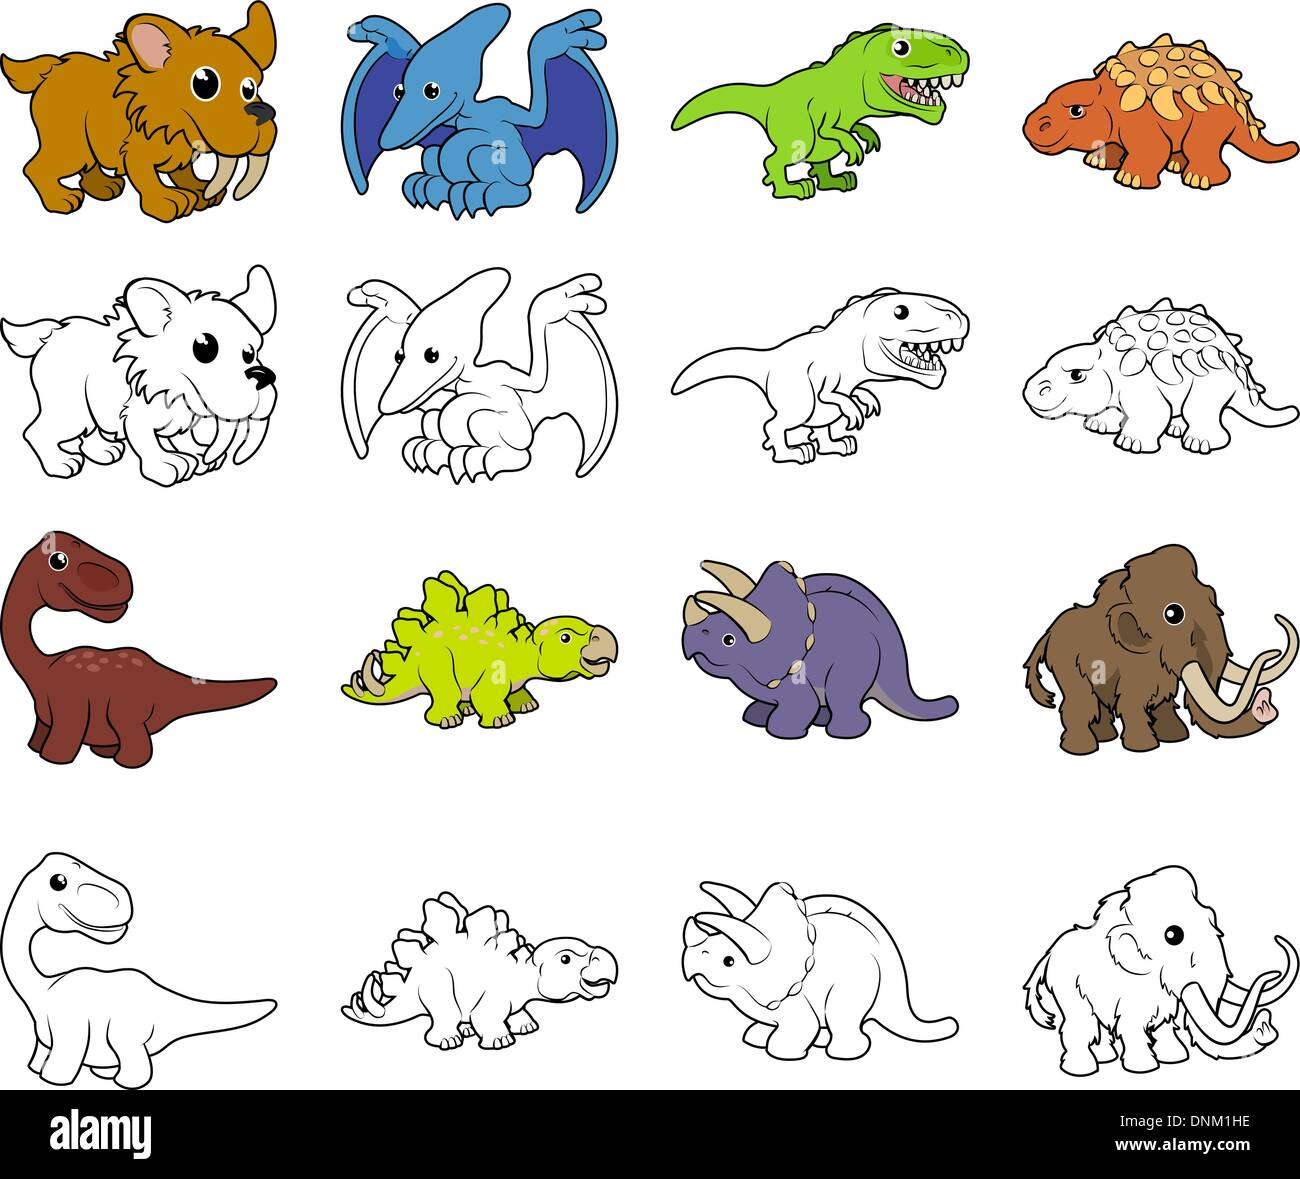 A Set Of Cartoon Prehistoric Animal And Dinosaur